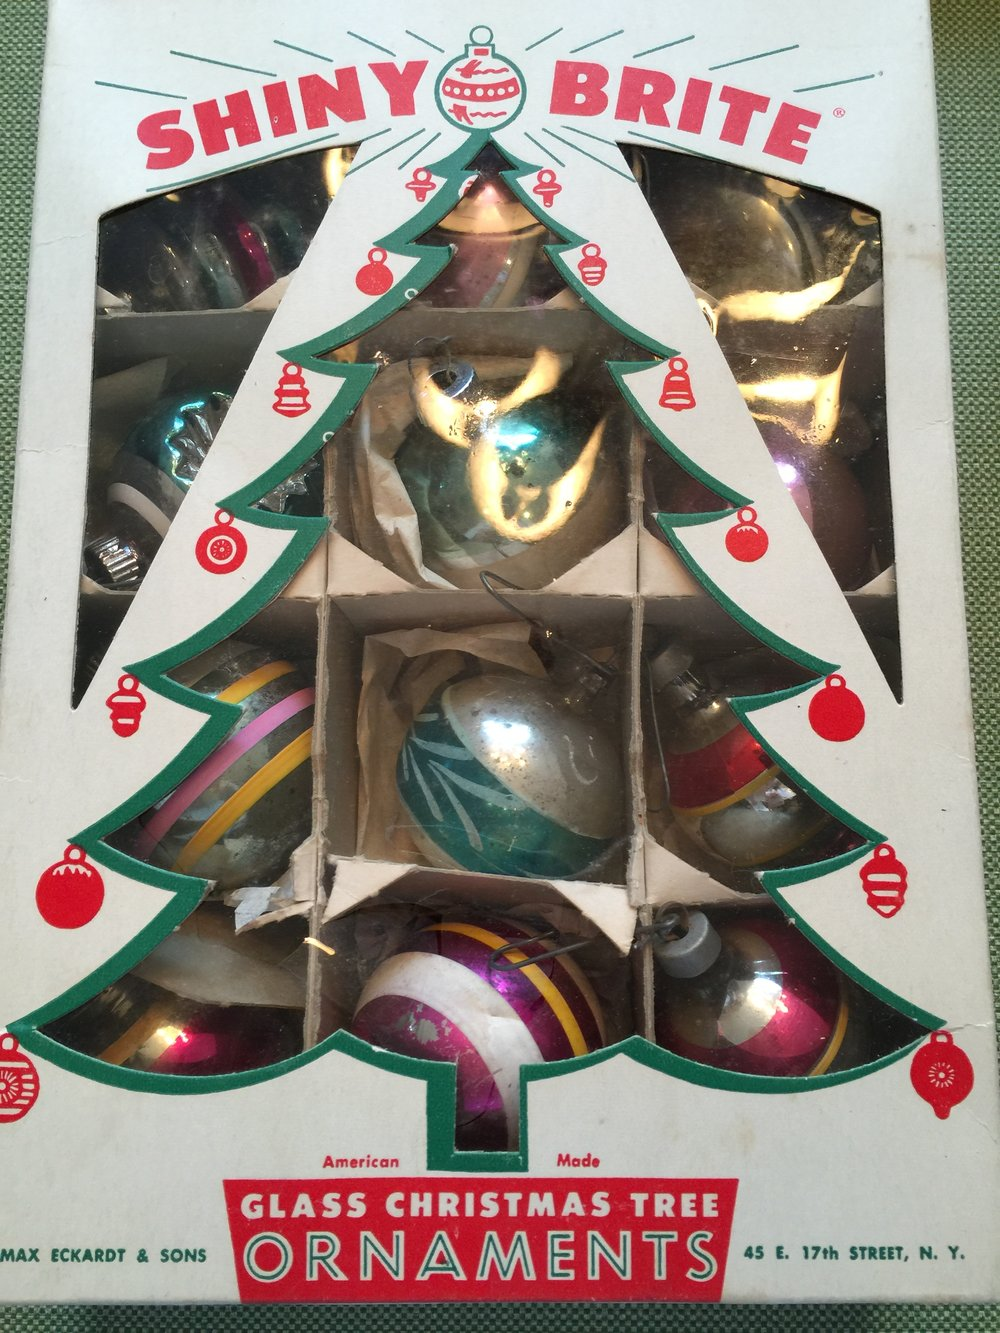 vintage shiny brite ornaments 40jpg - Vintage Shiny Brite Christmas Ornaments